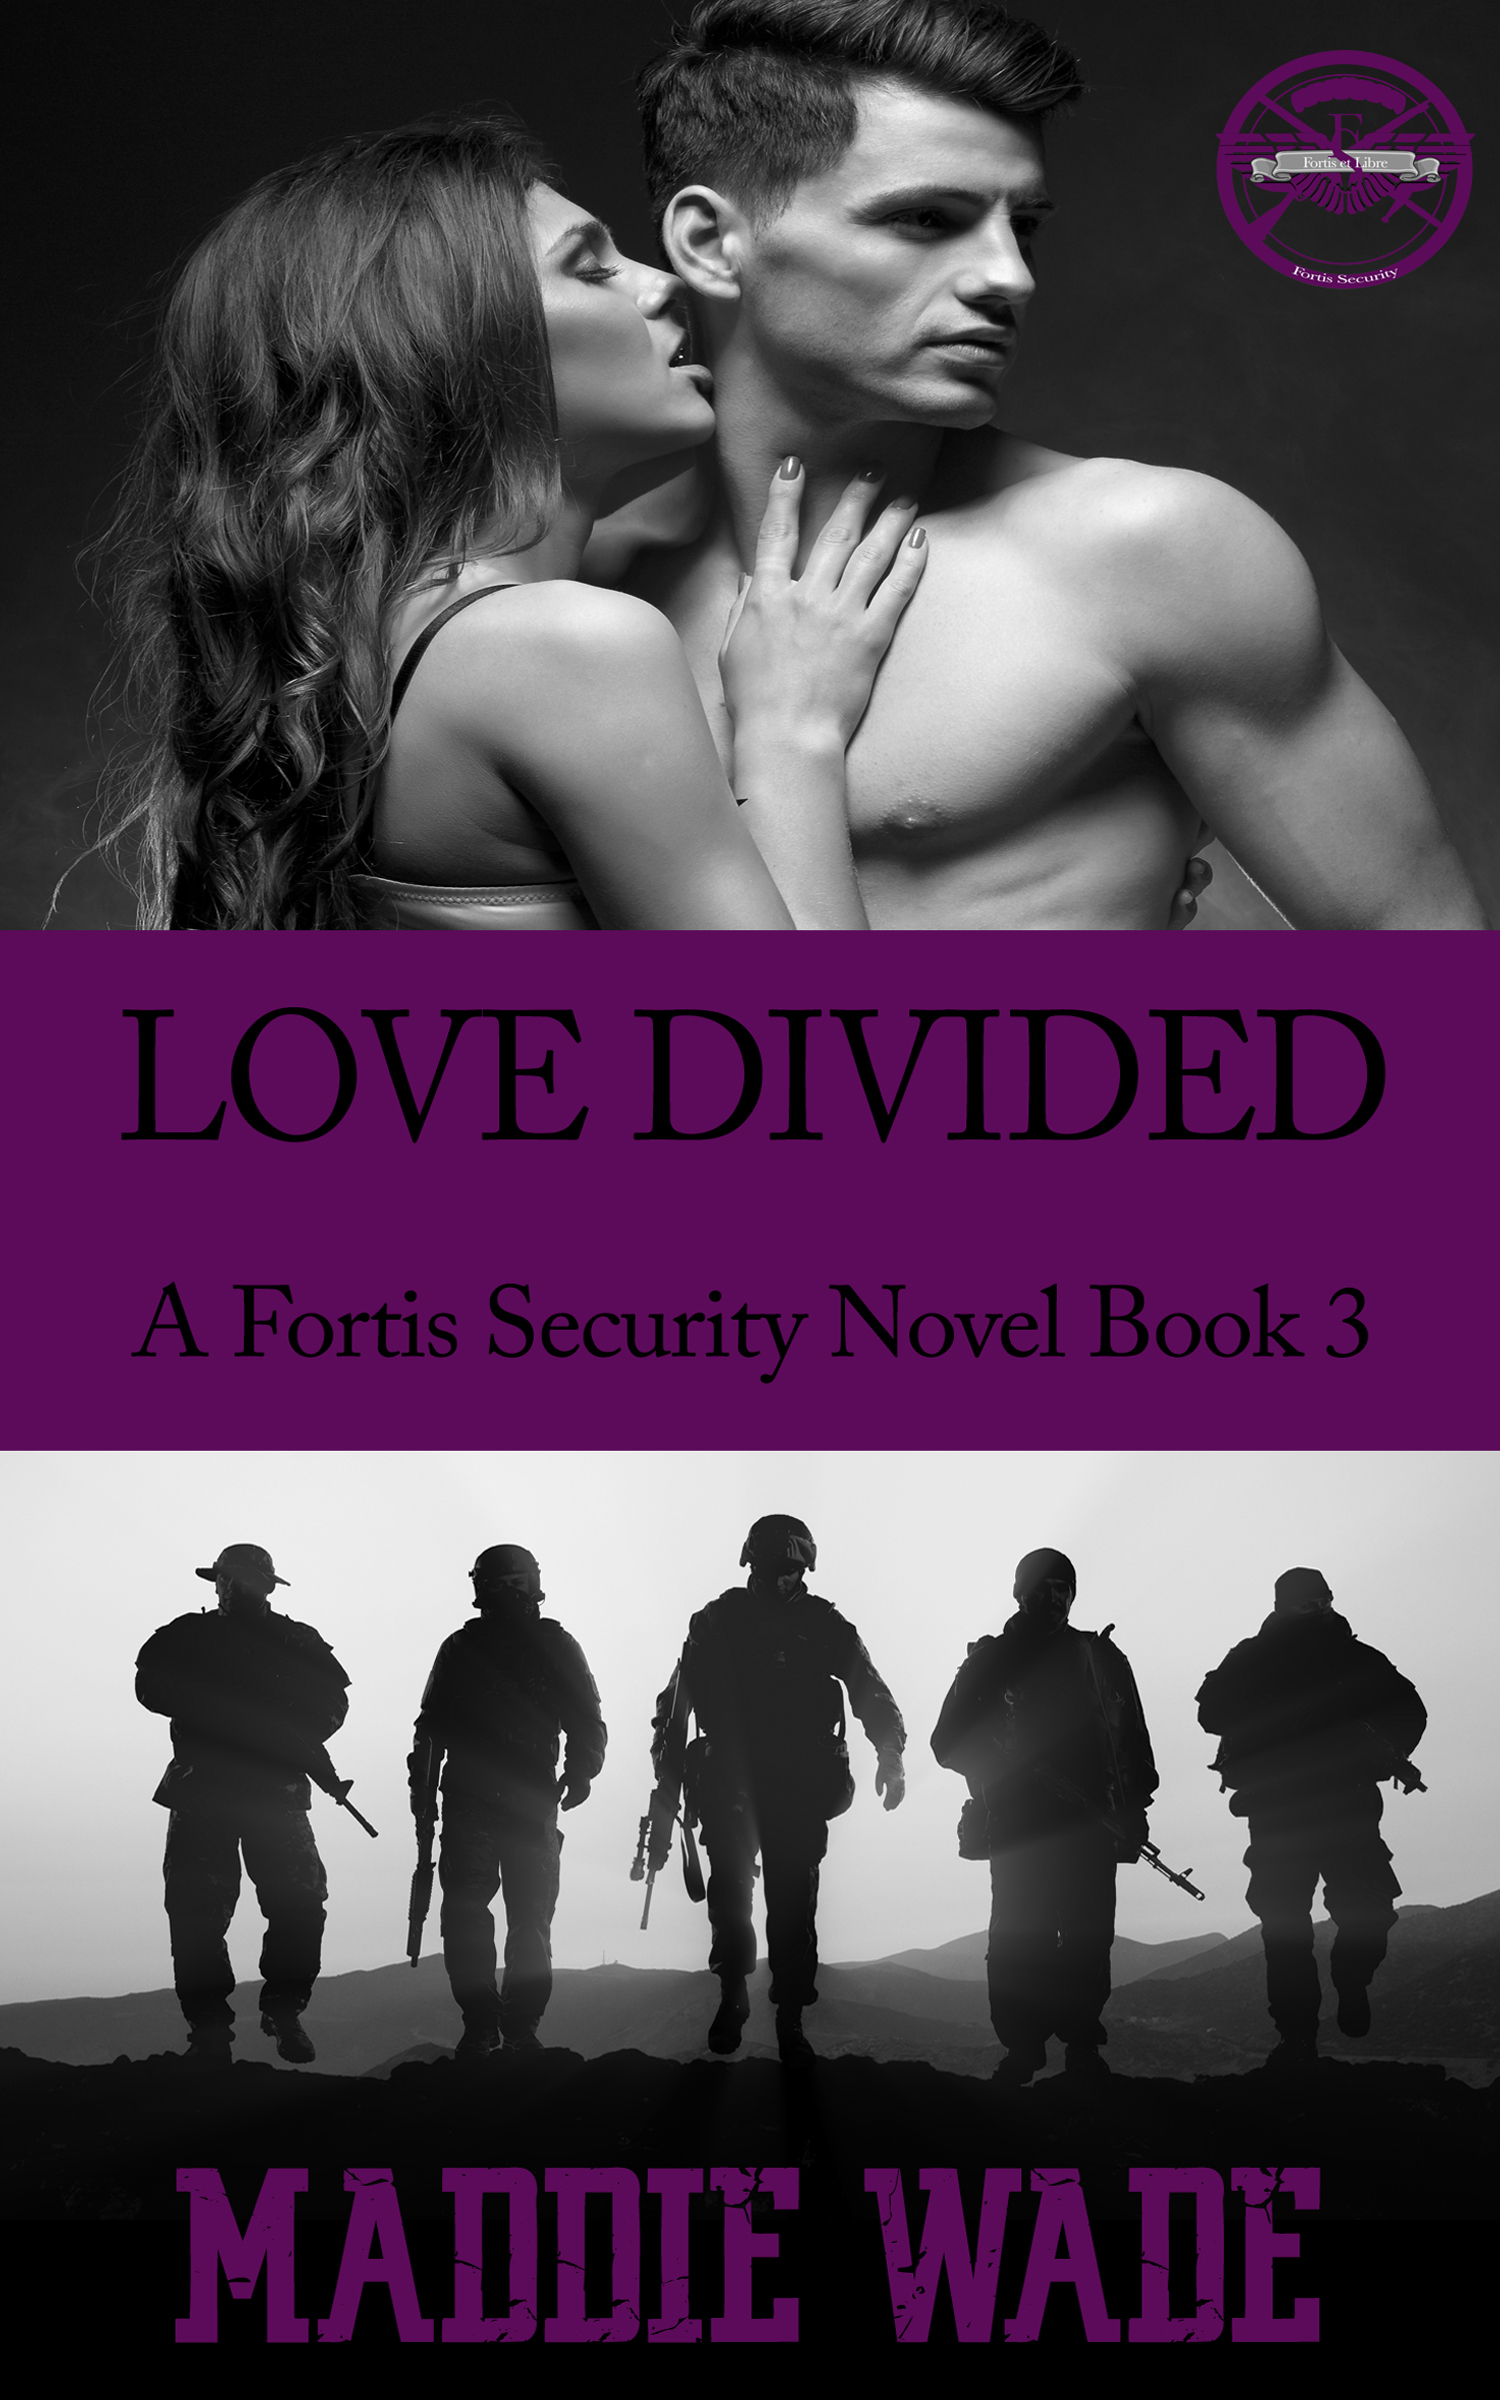 image of book cover named Love Divided